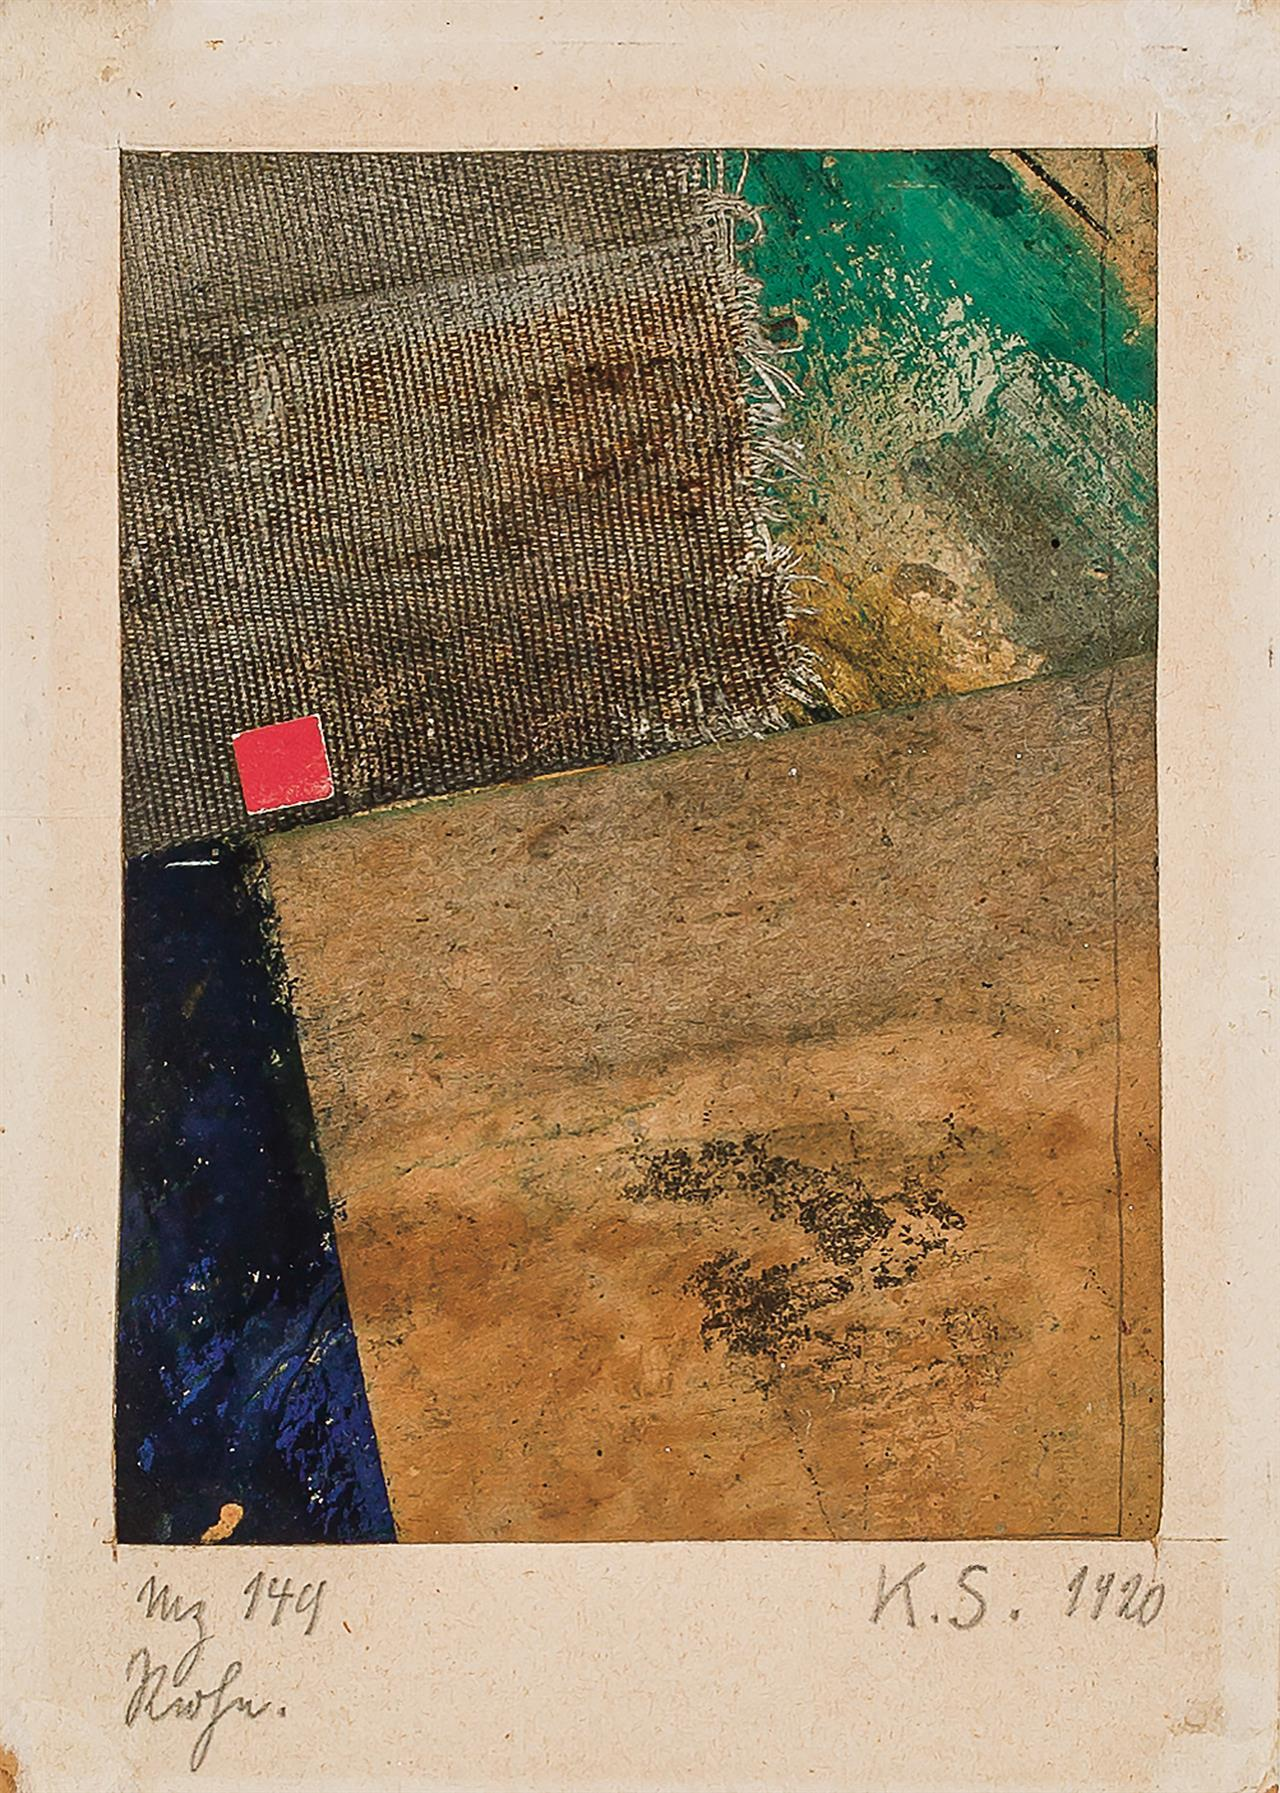 """KURT SCHWITTERS, German (1887-1948), """"Merz 149"""", collage, signed and dated lower right """"K.S. 1920, titled """"Mz 149""""and inscribed lowe..."""